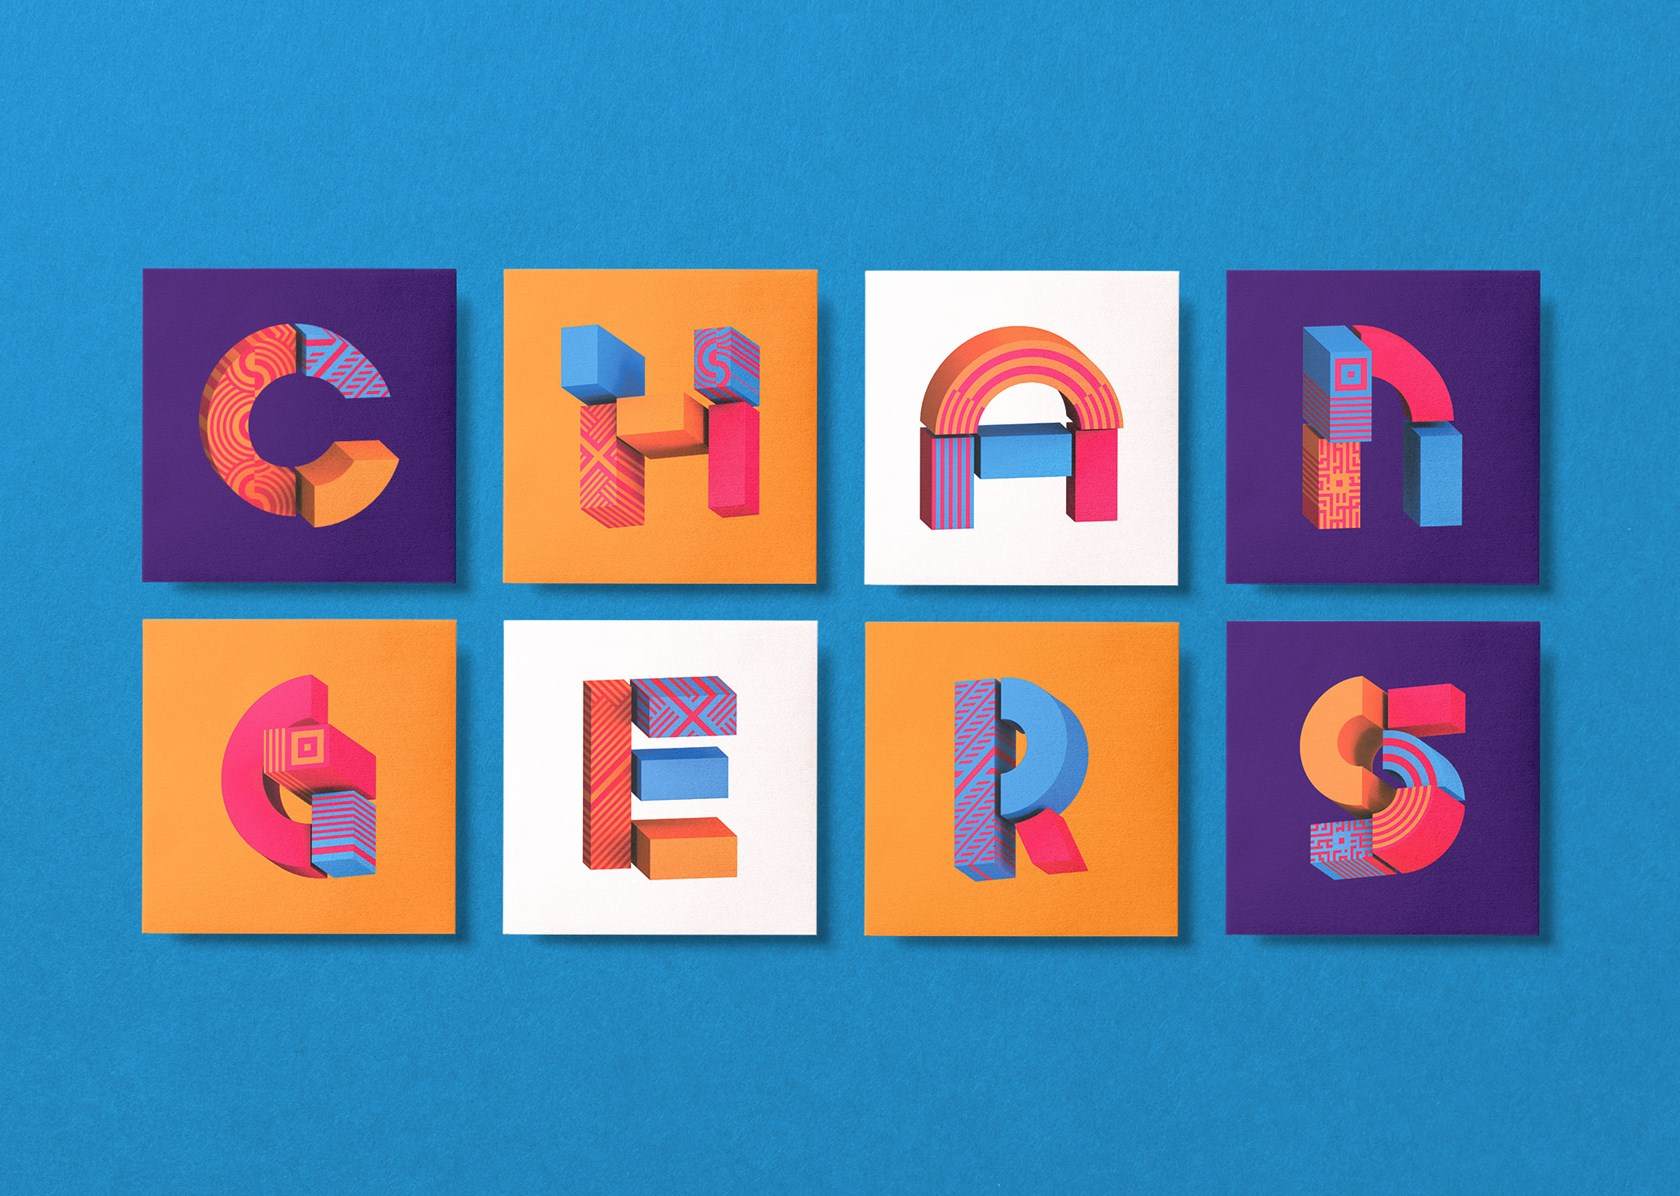 Changers19 Letras